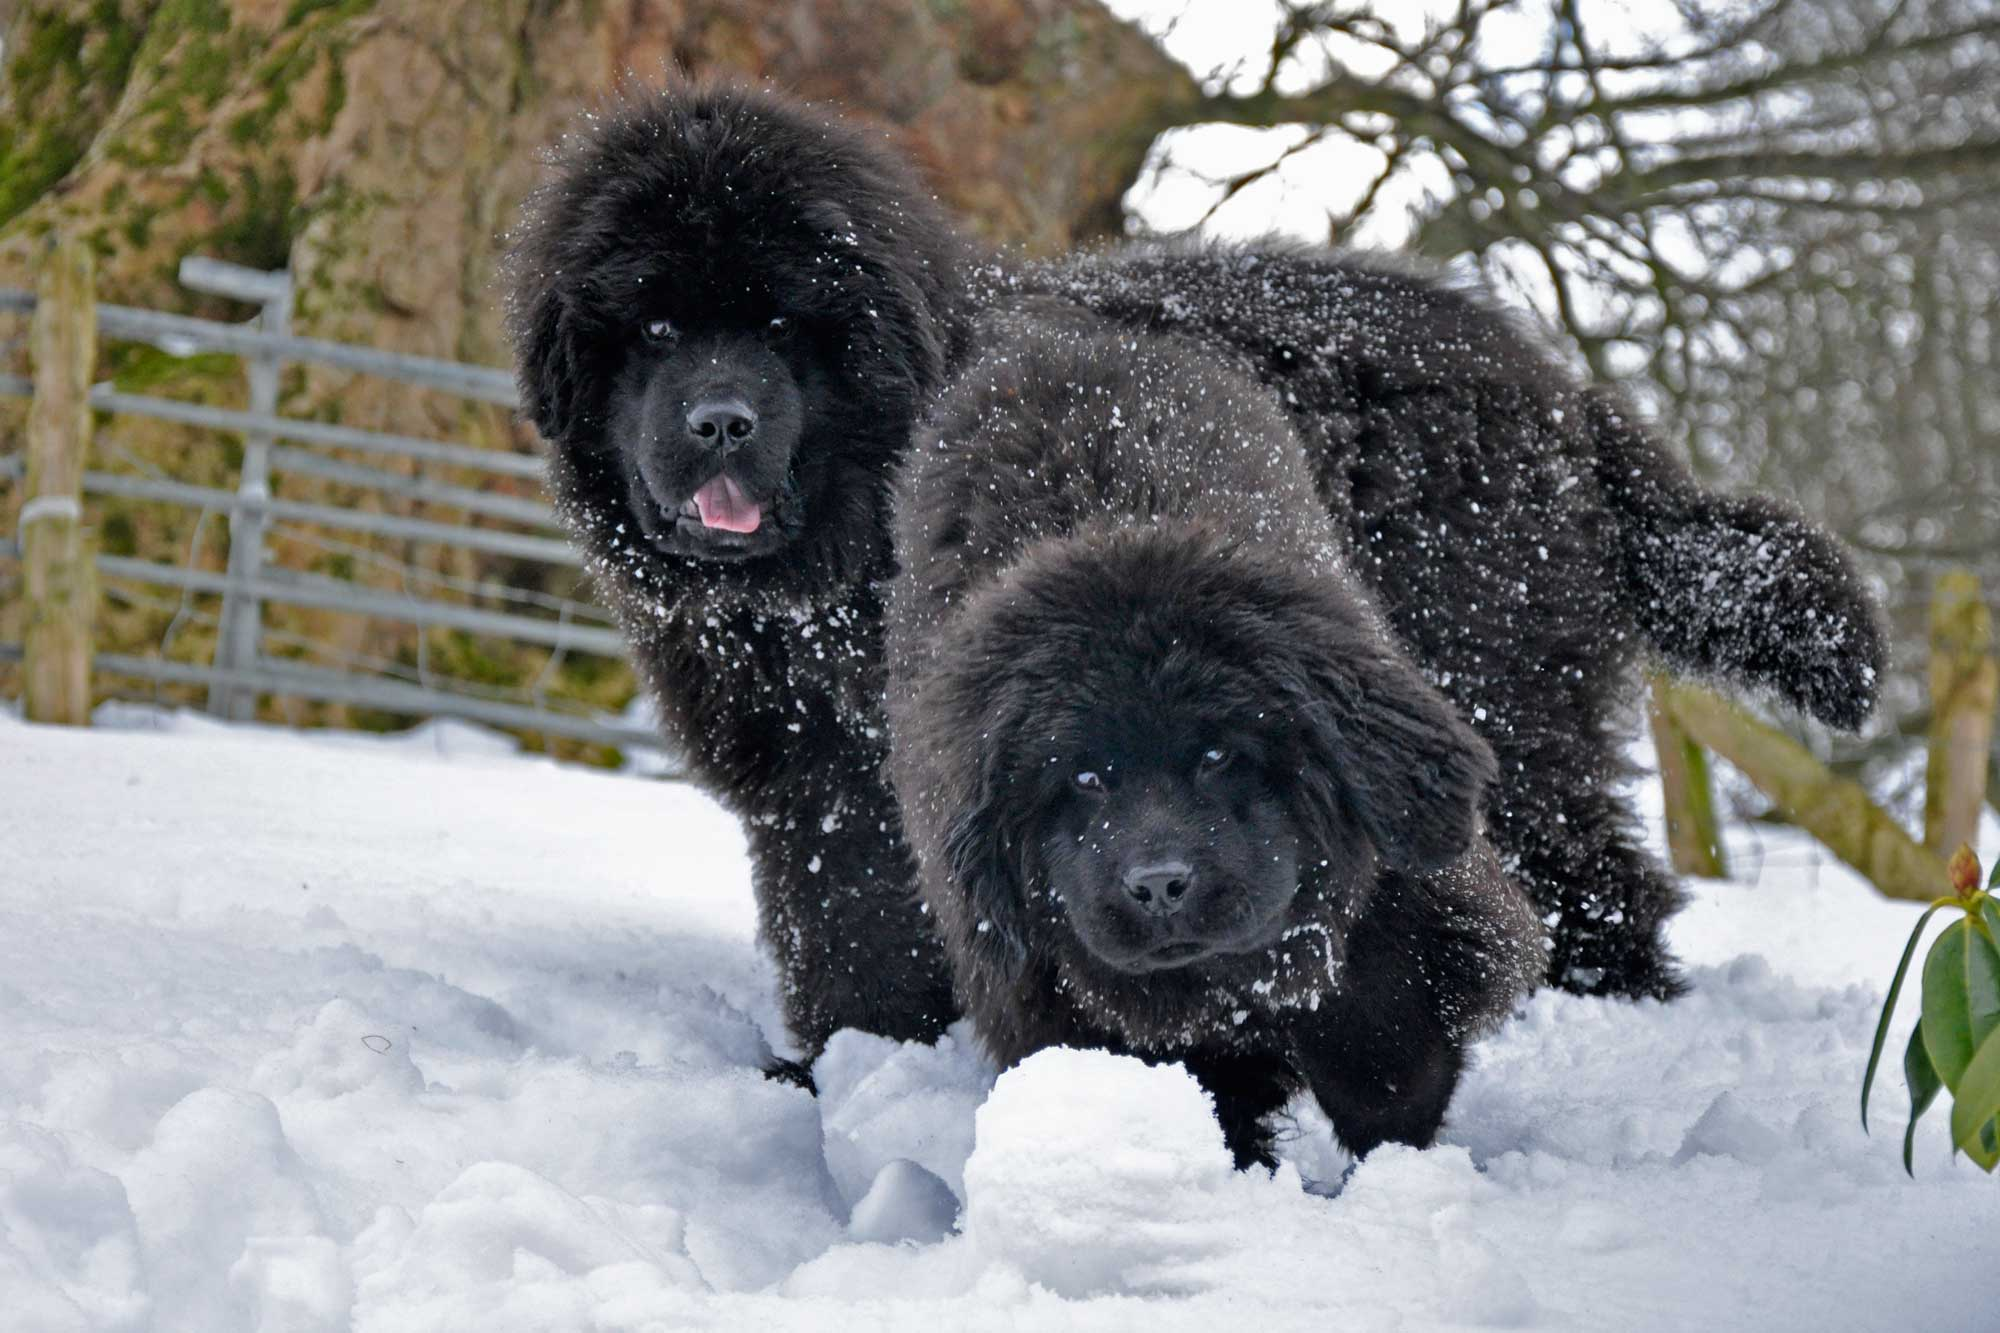 Two black Newfoundland puppies playing in the snow